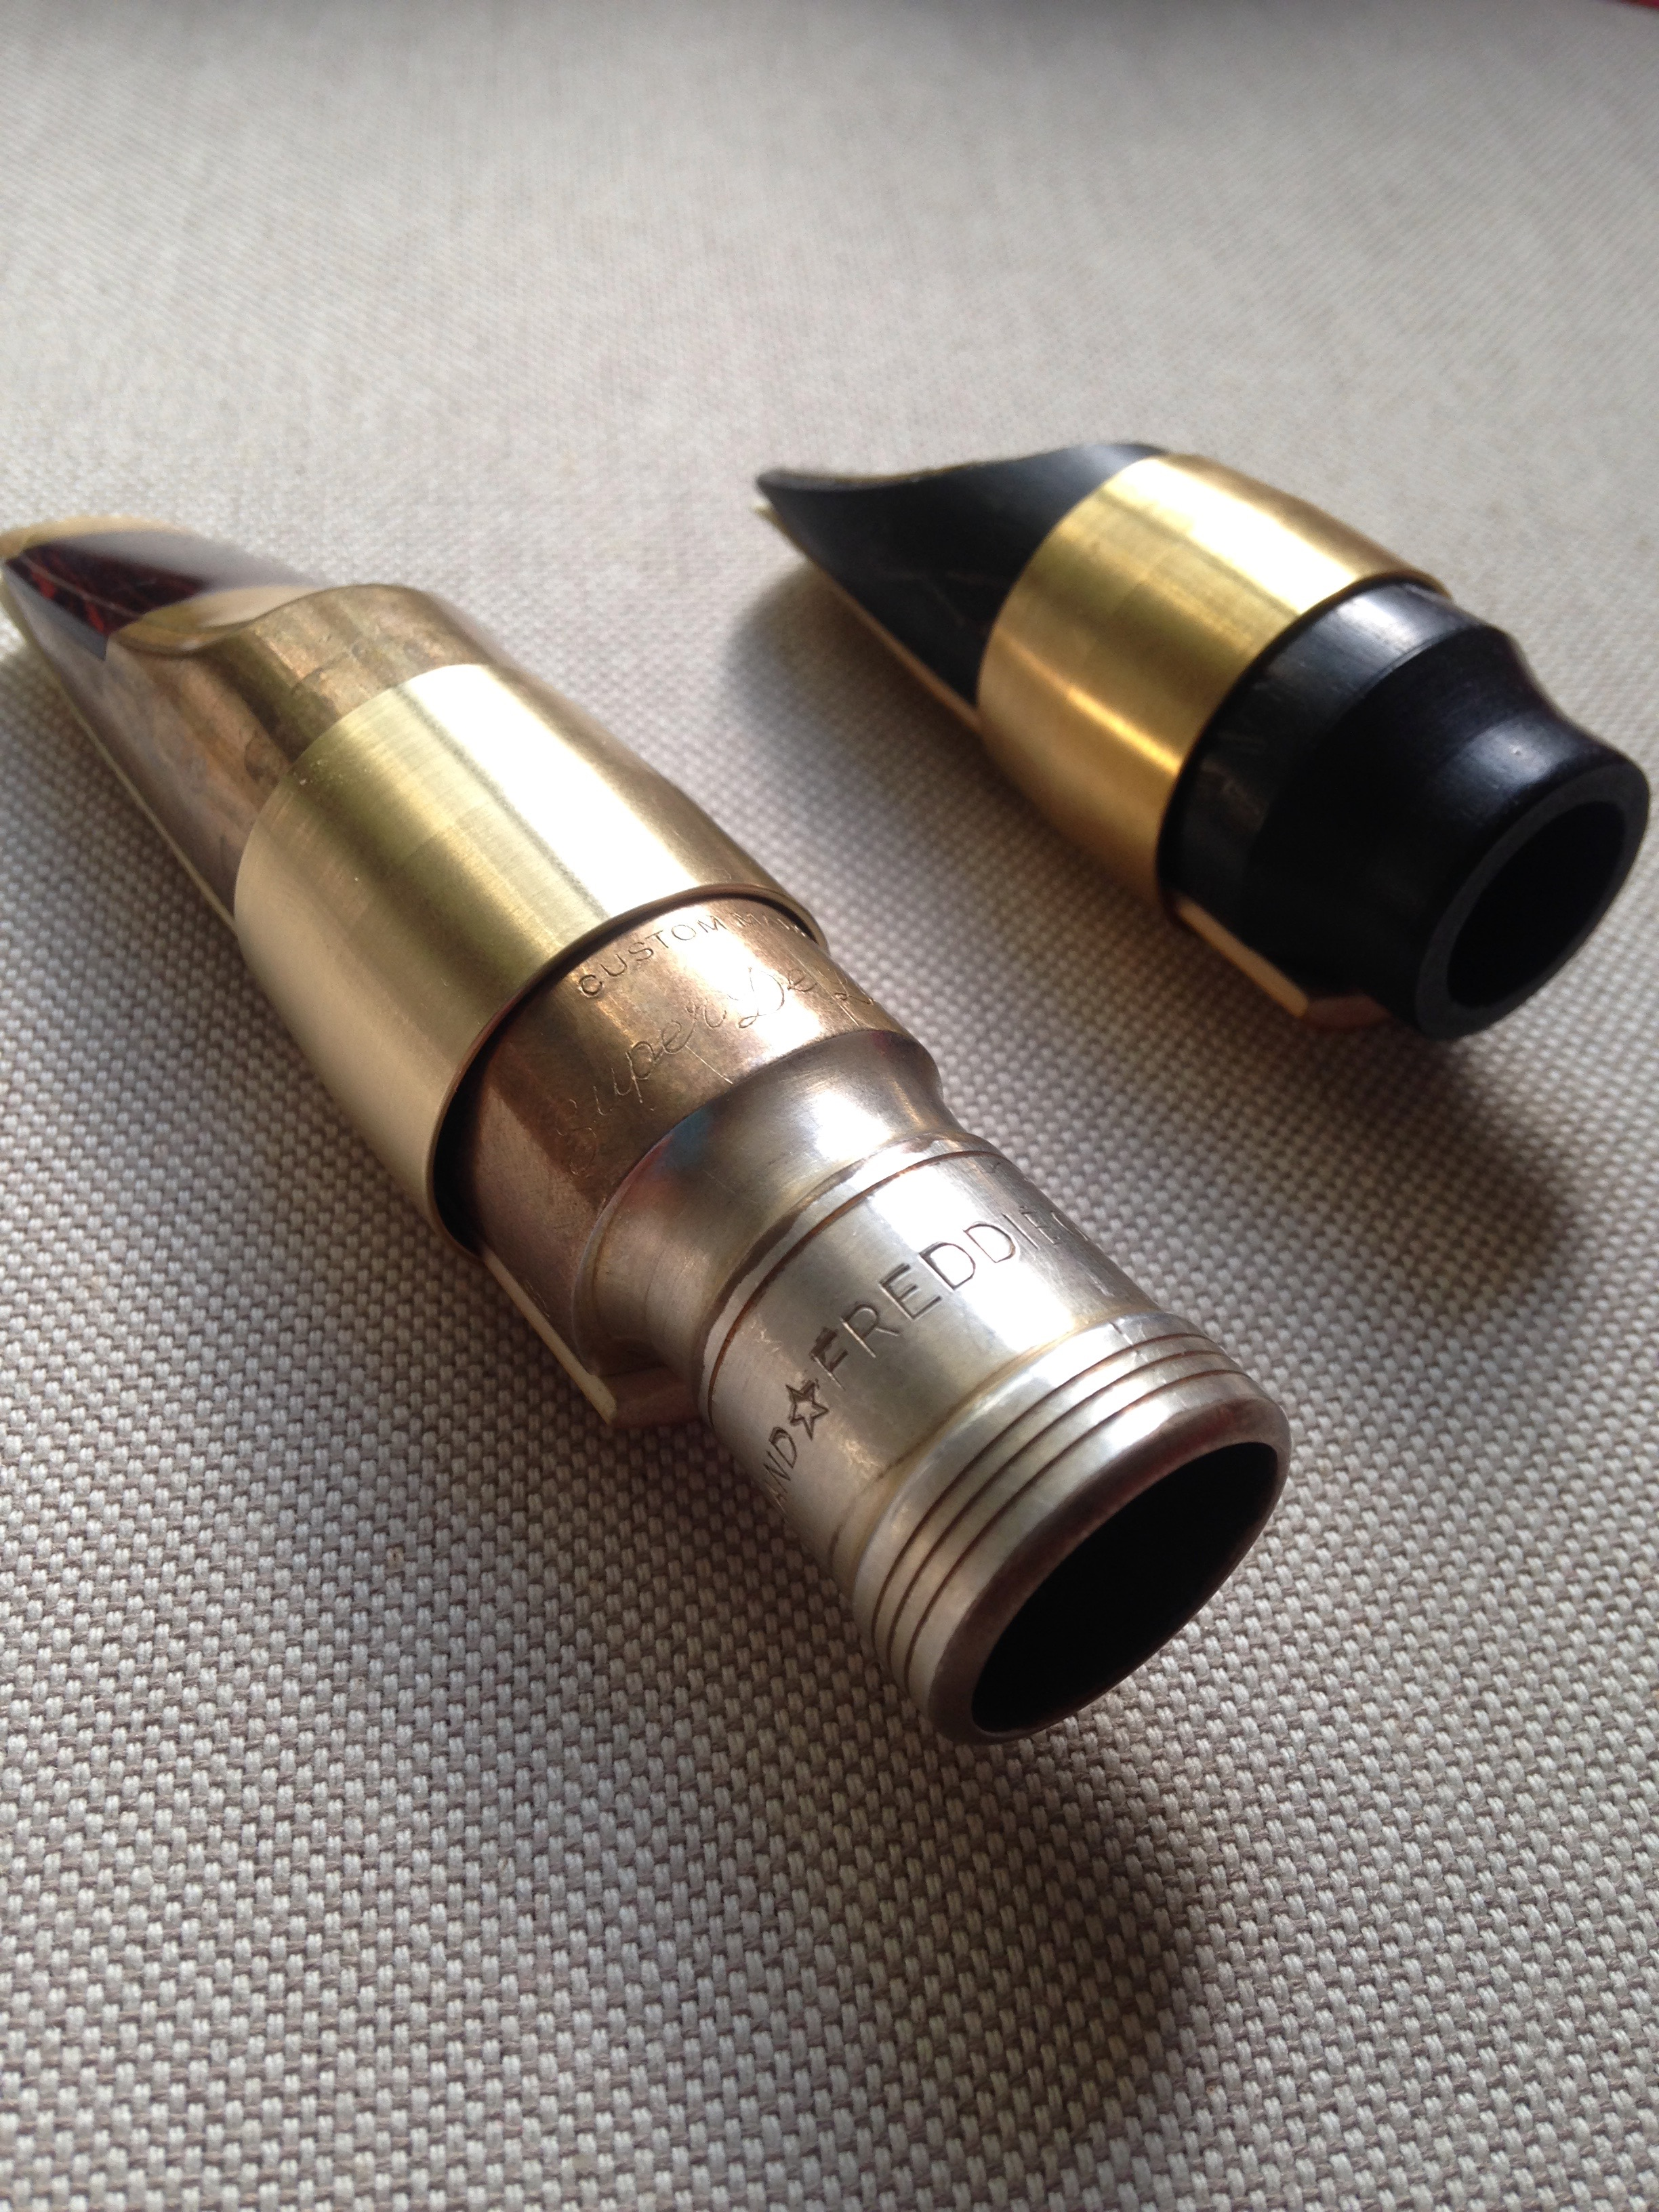 Two custom sized Aidü ligatures, one is a Gregory Tenor piece, the other is a Lebayle Soprano piece.